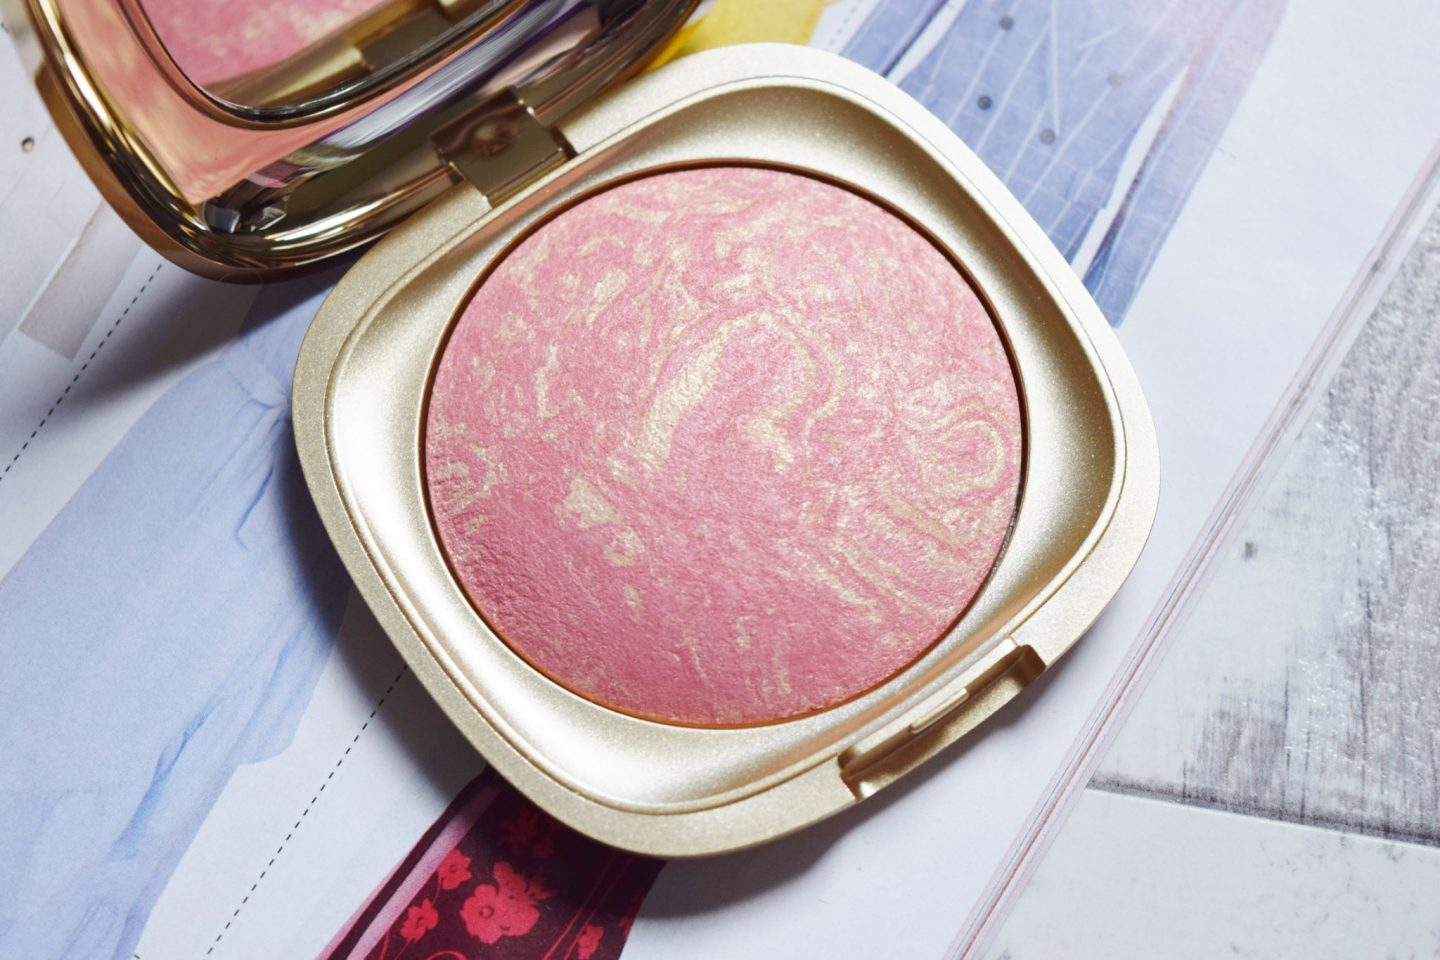 Kiko Milano Gold Waves Blush in 02 Coral Sunset